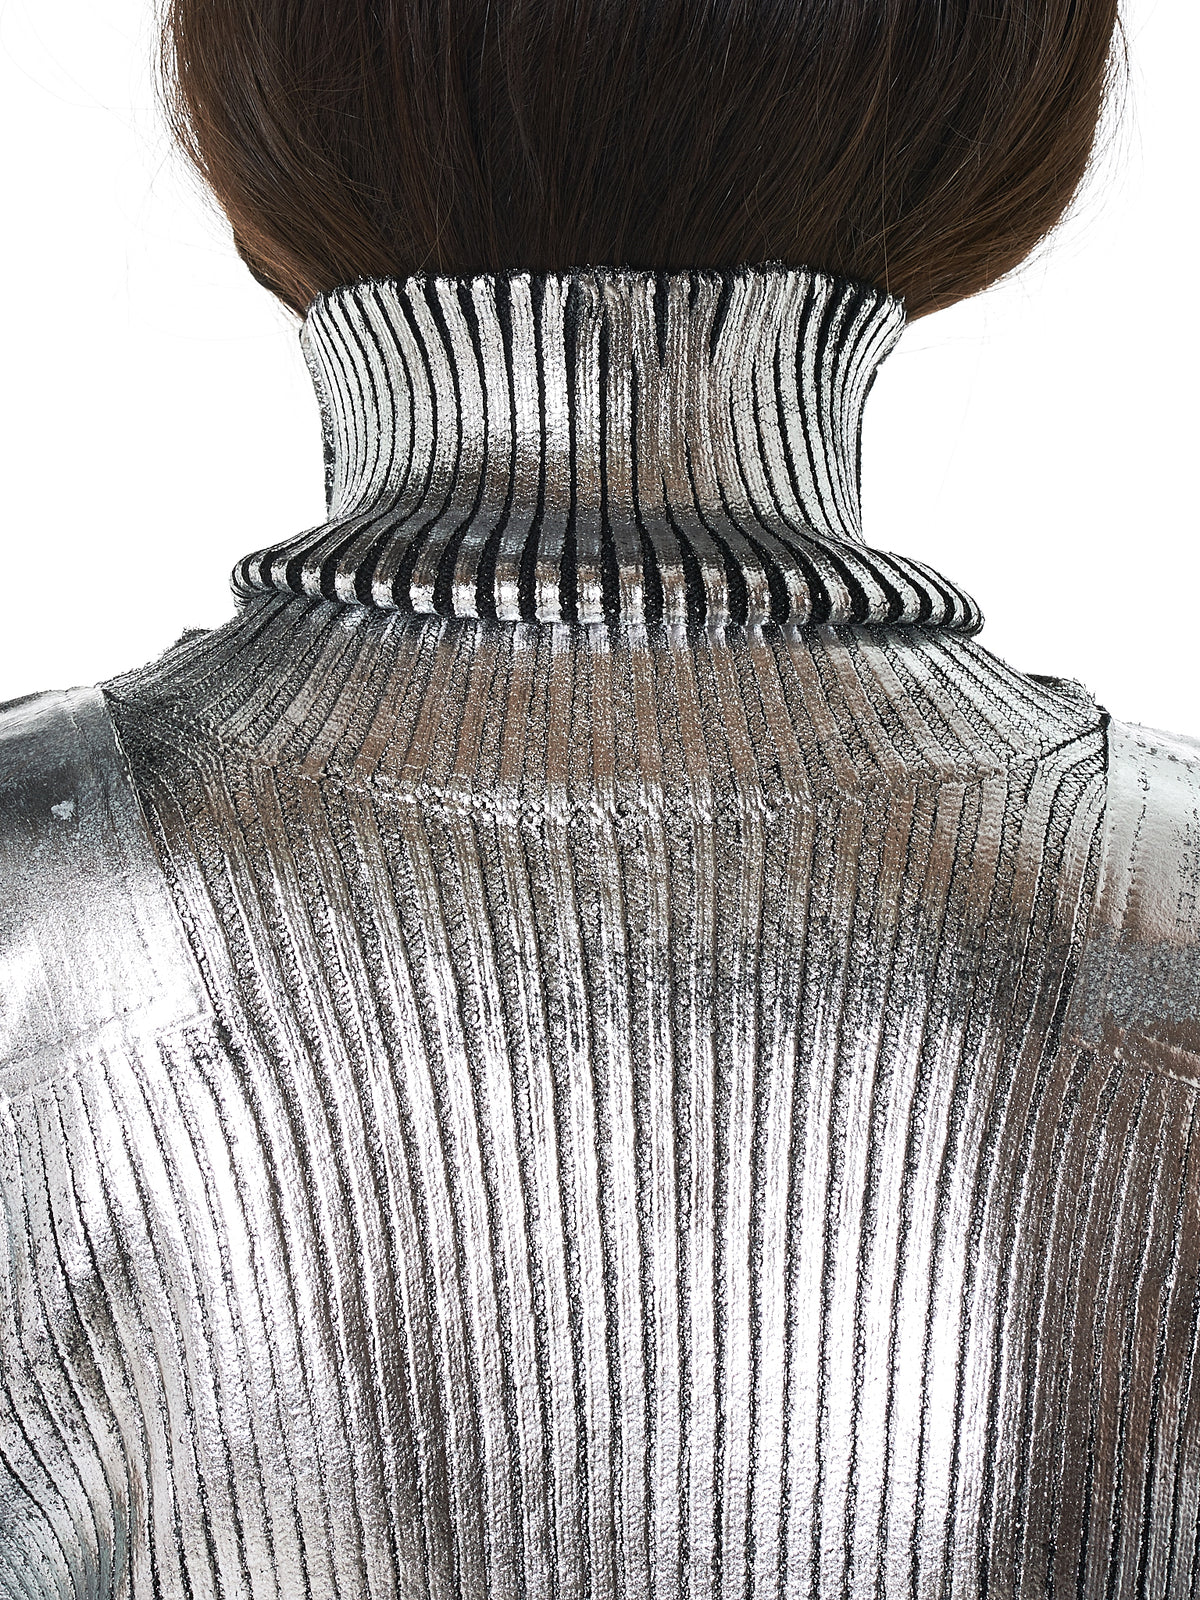 MM6 Maison Margiela Turtleneck - Hlorenzo Detail 2